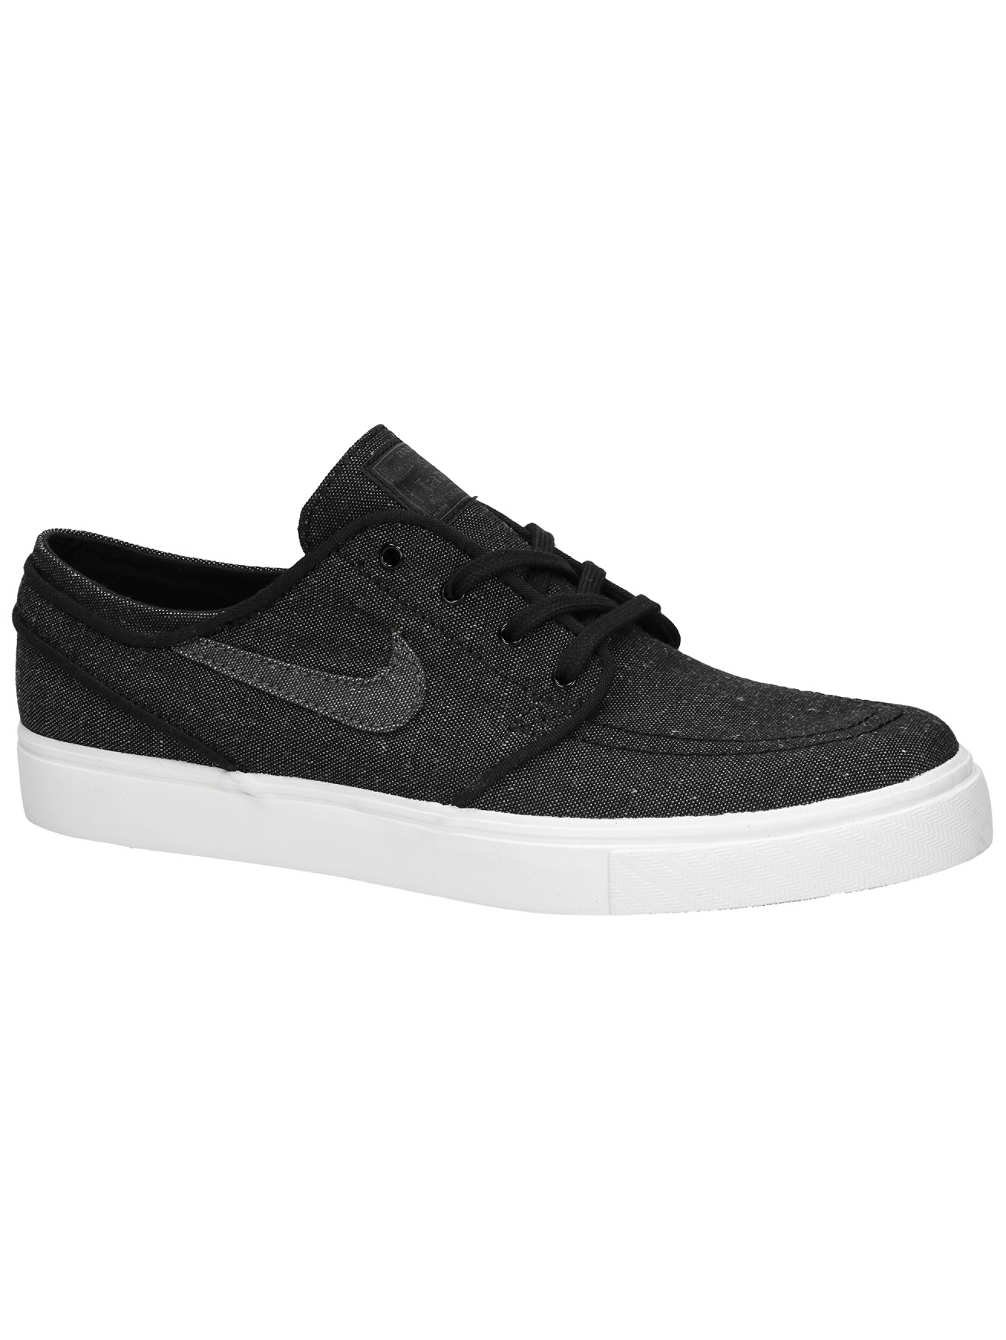 a3bddcba1323 Galleon - NIKE SB Zoom Stefan Janoski Canvas Deconstructed Men s Skate  Shoes Black Anthracite White (10.5)